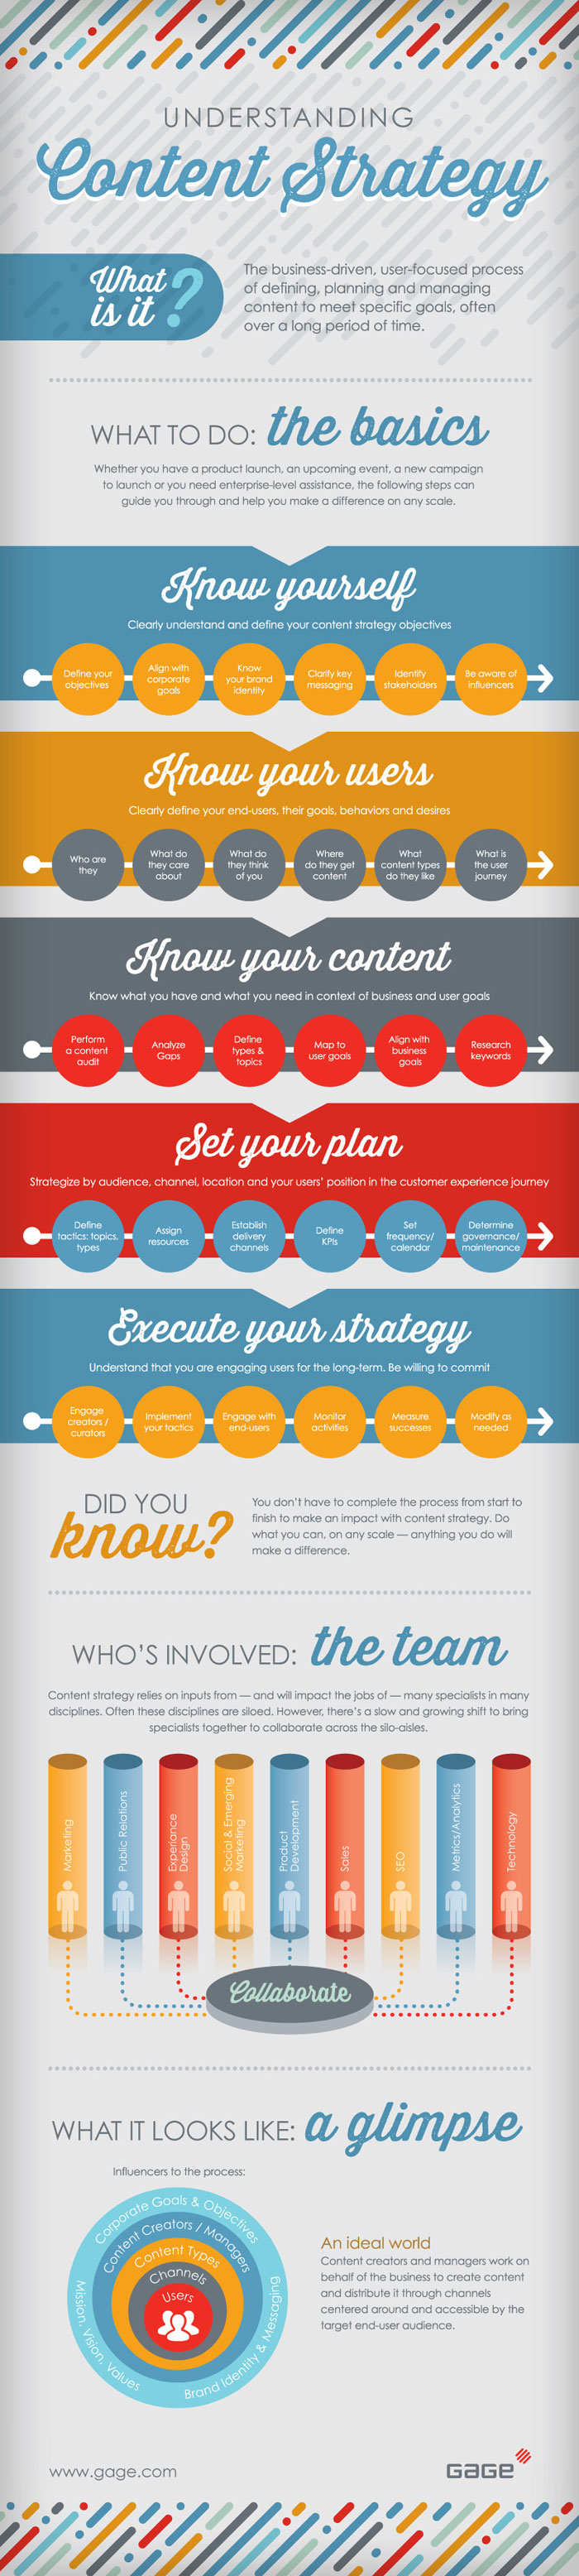 Gage-Content-Strategy-Infographic